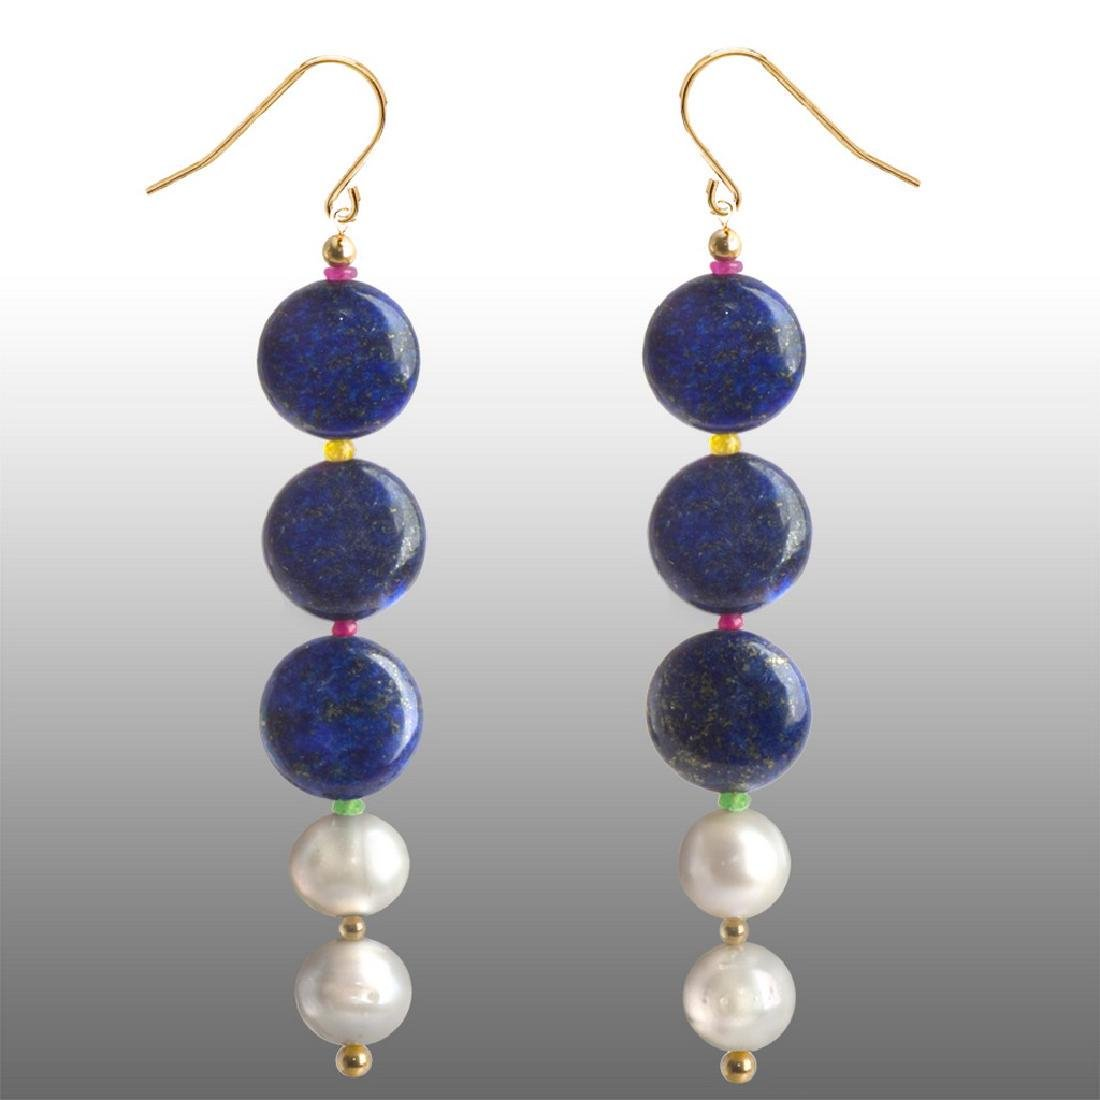 14K Afghan Lapis Lazuli, Sapphire, Emerald and Ruby